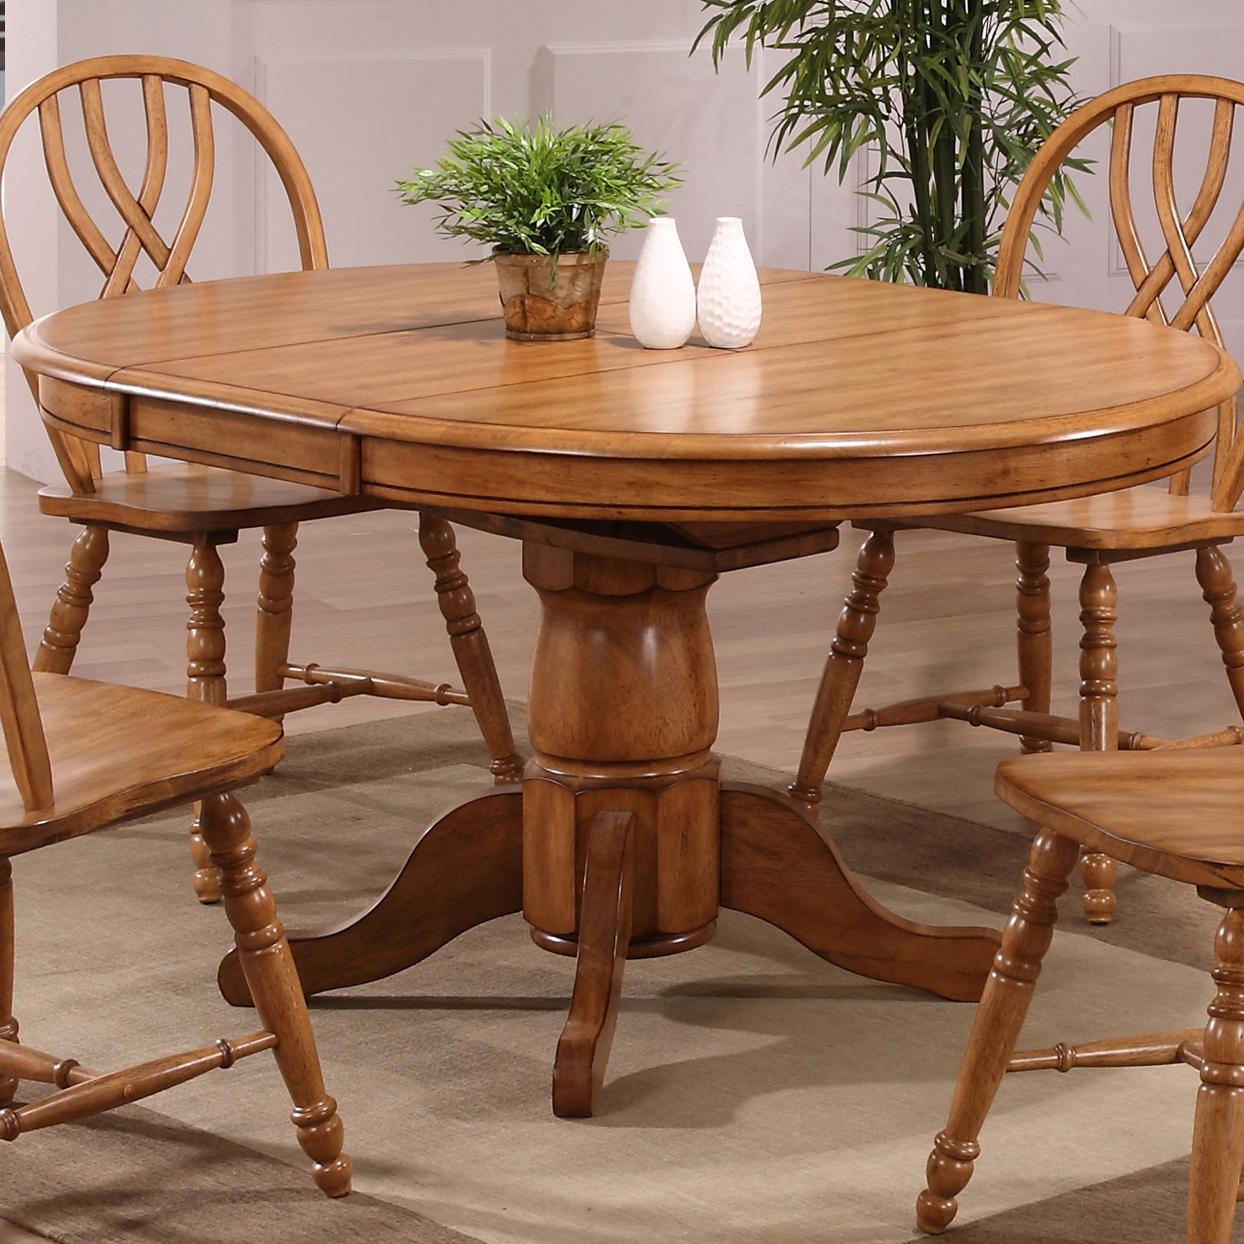 Oak Kitchen Table Chairs: E.C.I. Furniture Dining Solid Oak Single Pedestal Dining